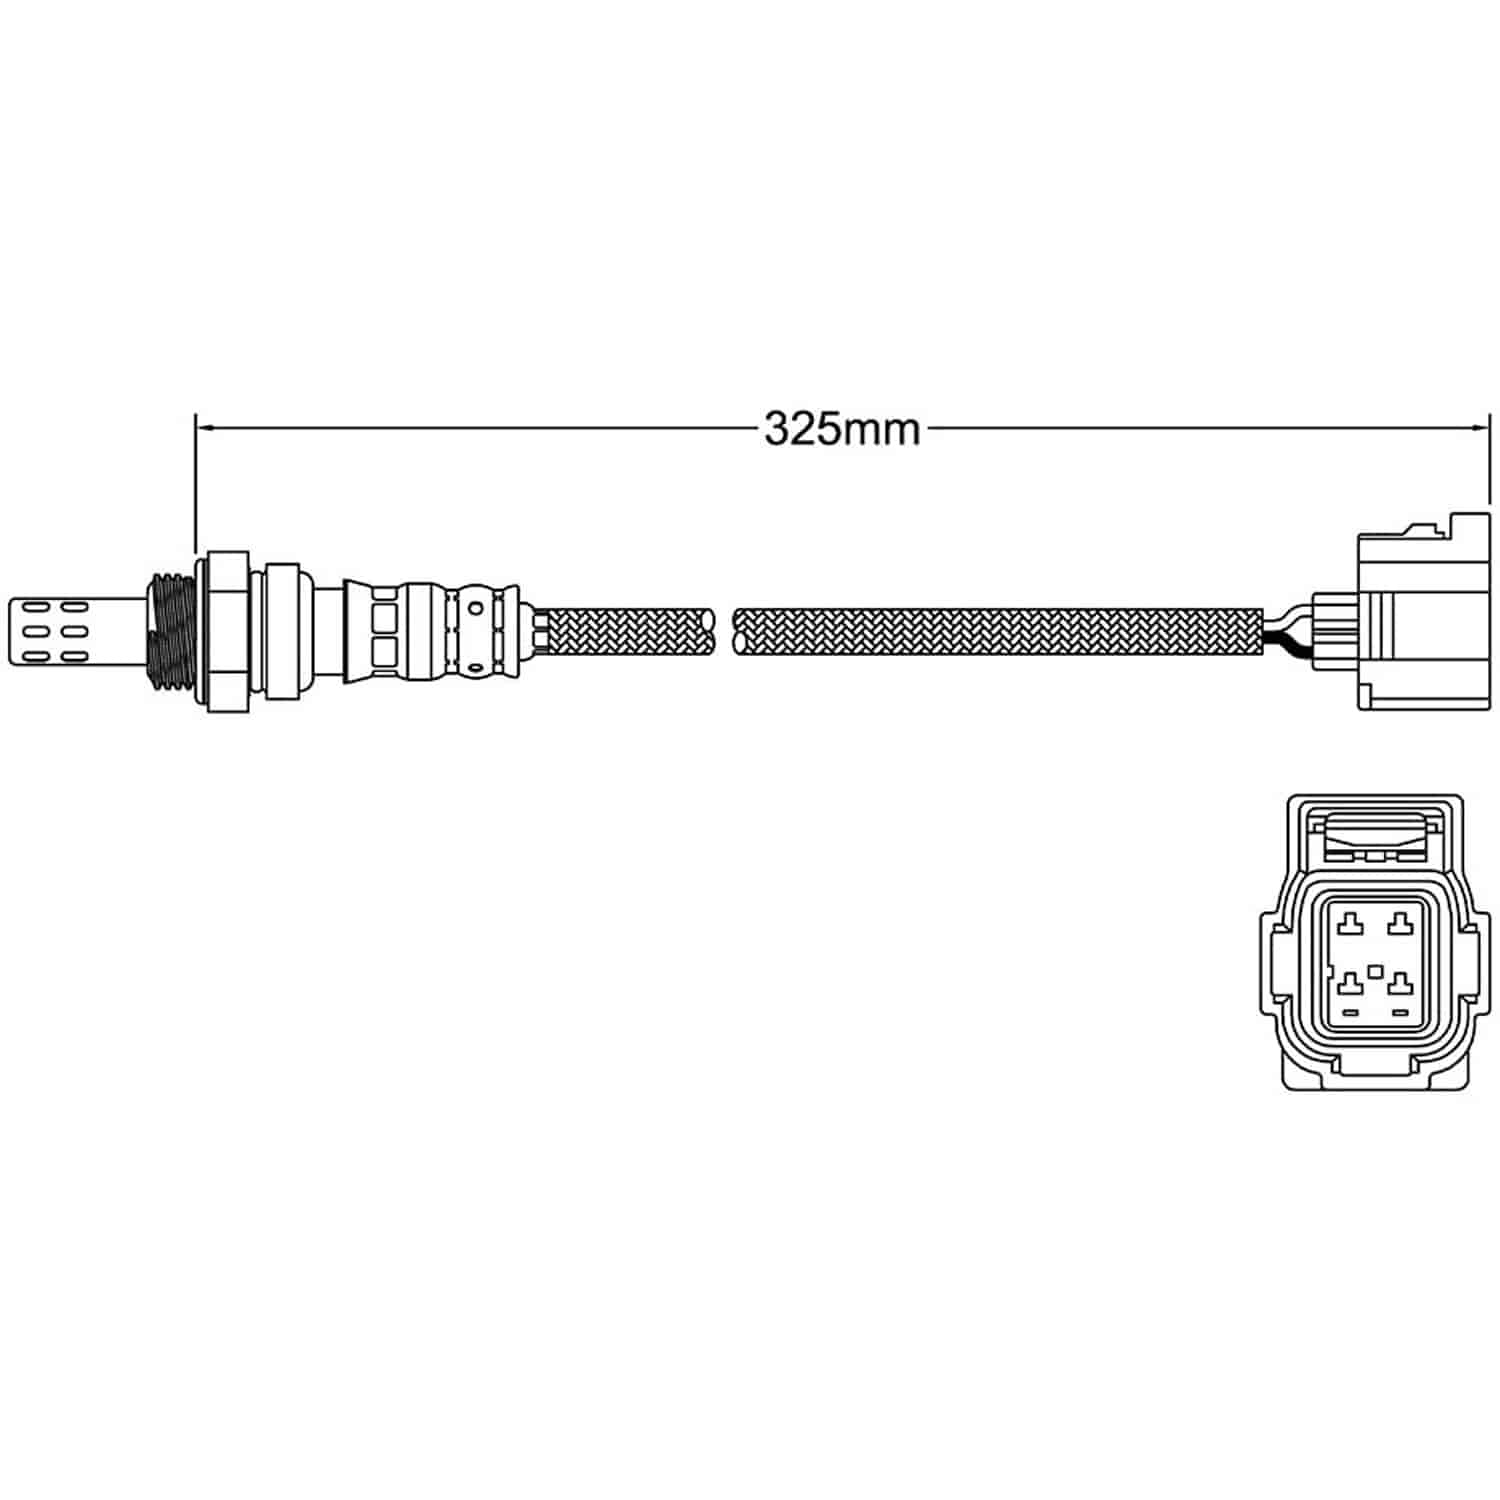 Walker Oxygen Sensor Wiring Diagram Trusted Diagrams Co2 Products 250 24680 O2 Jegs